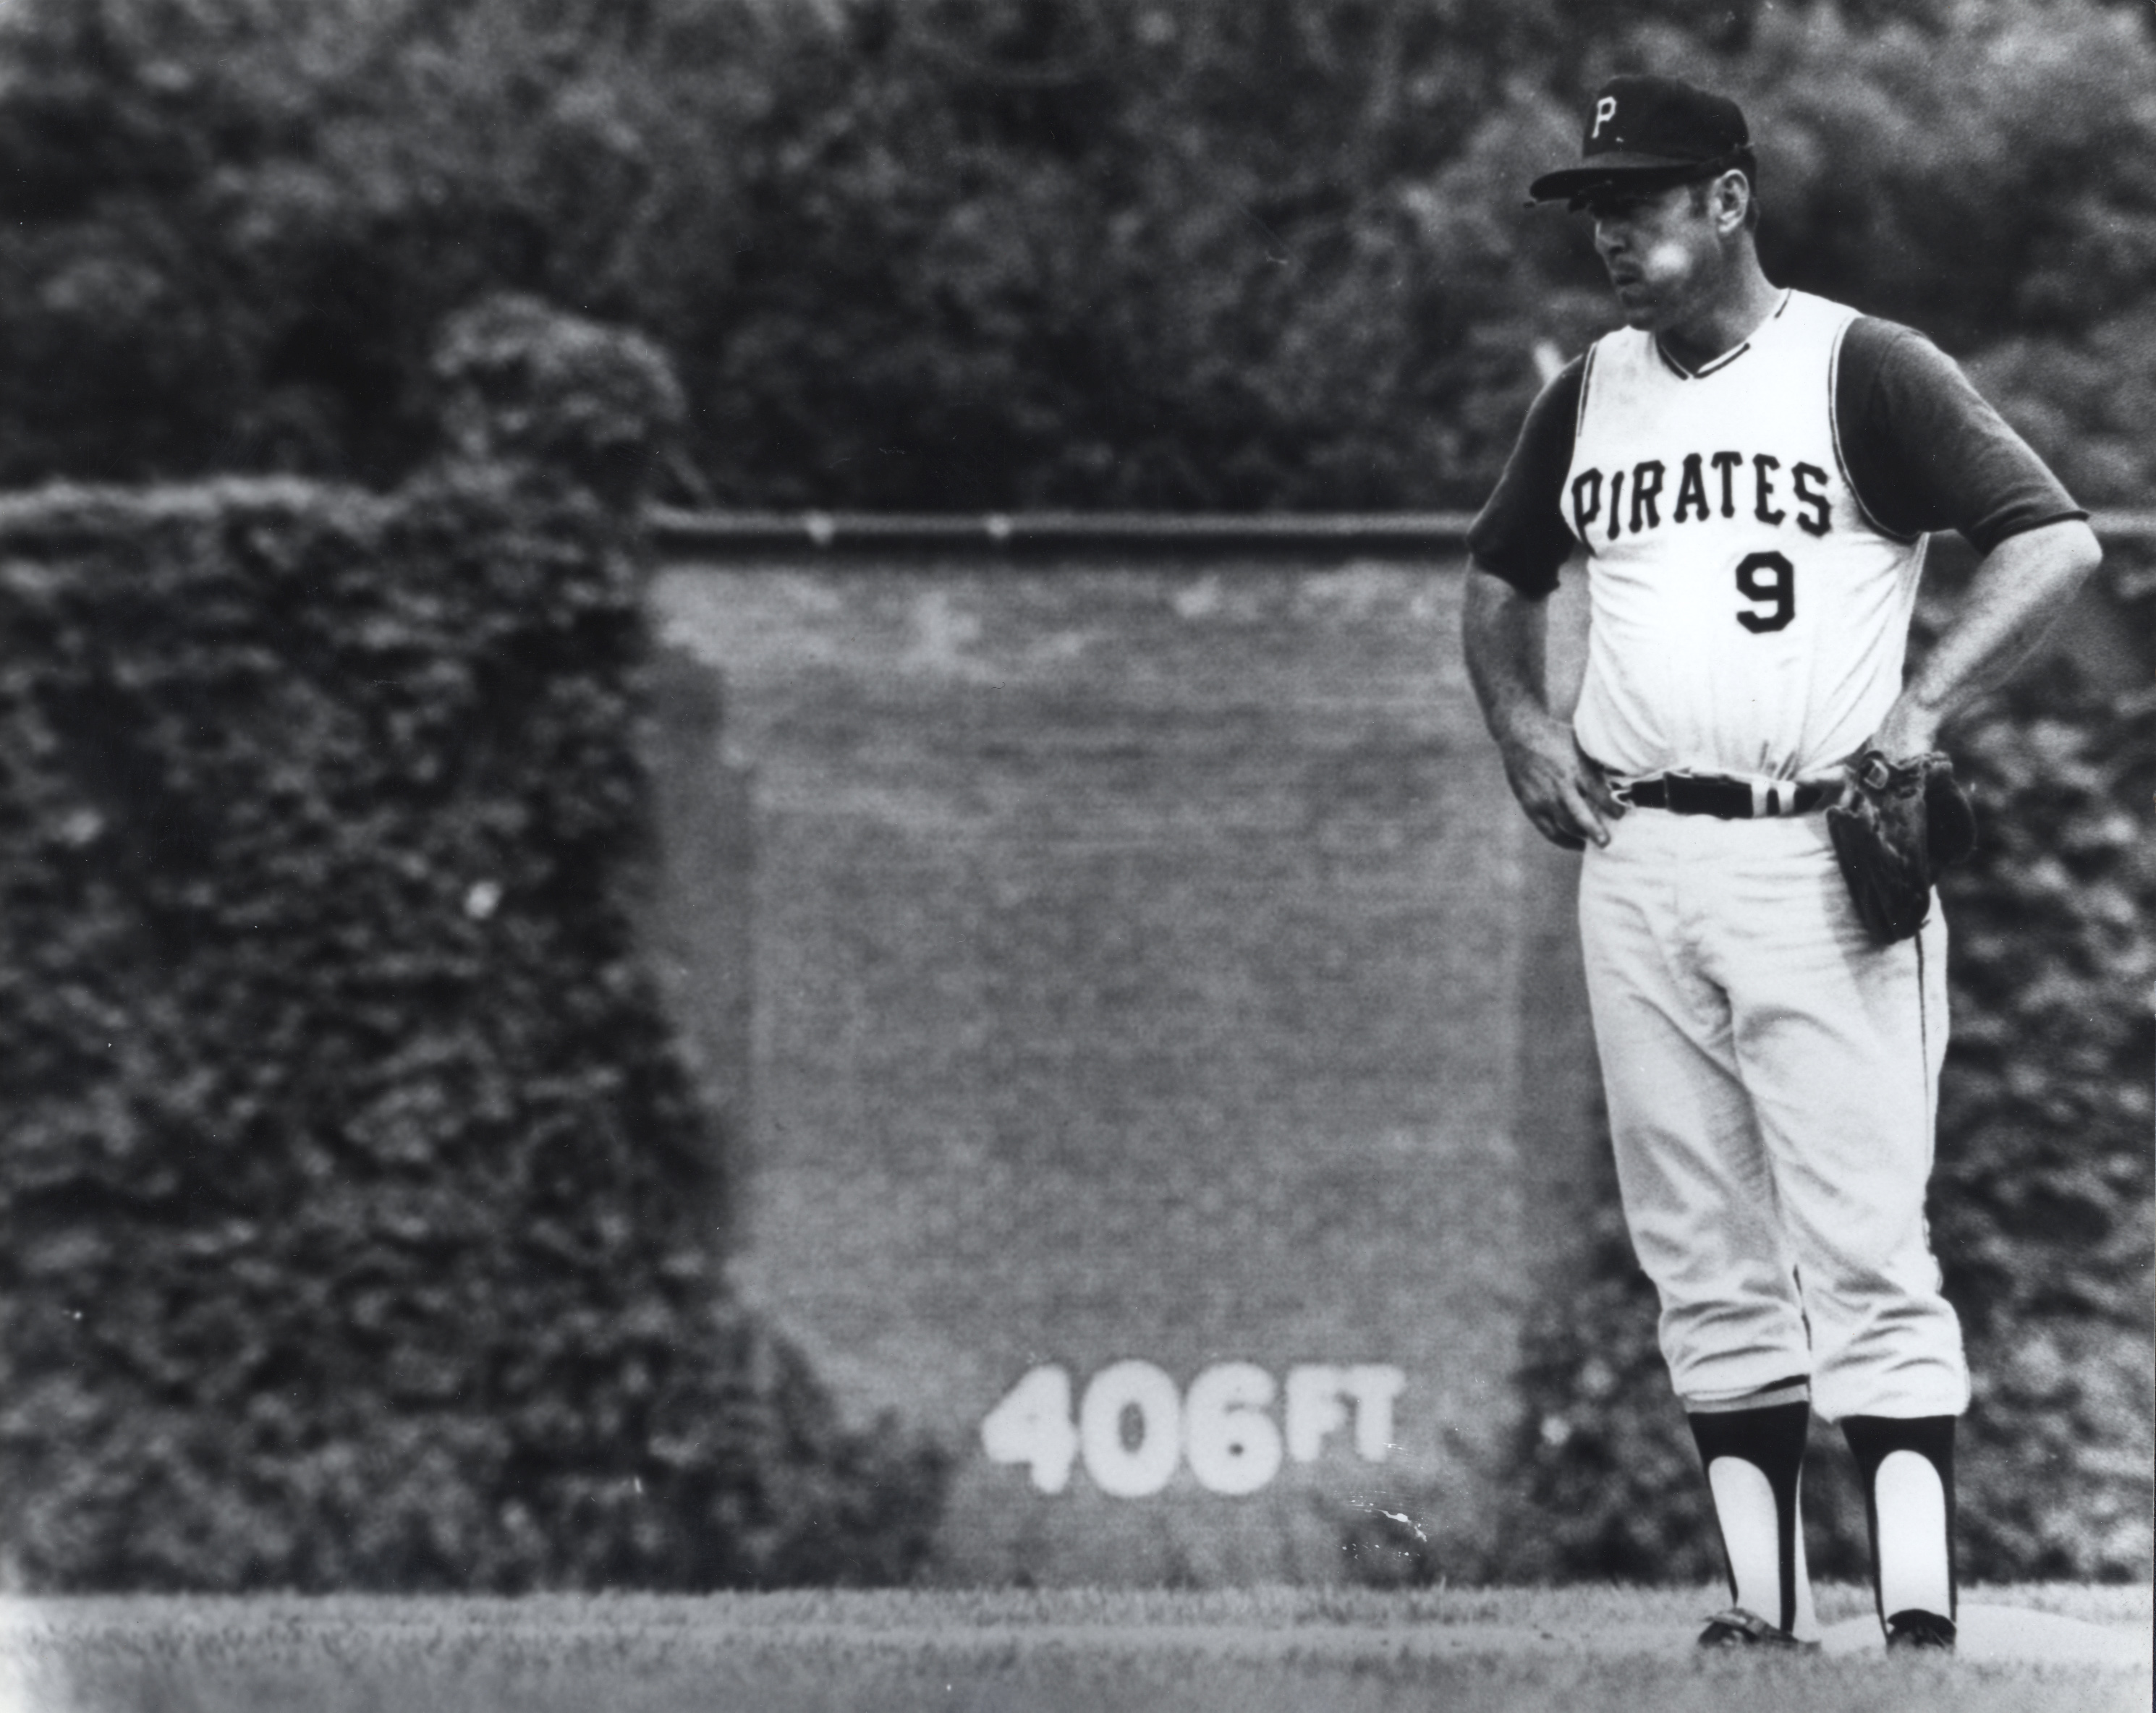 Pirates Hall of Famer is shown during the final game at Pittsburgh's Forbes Field on June 28, 1970.